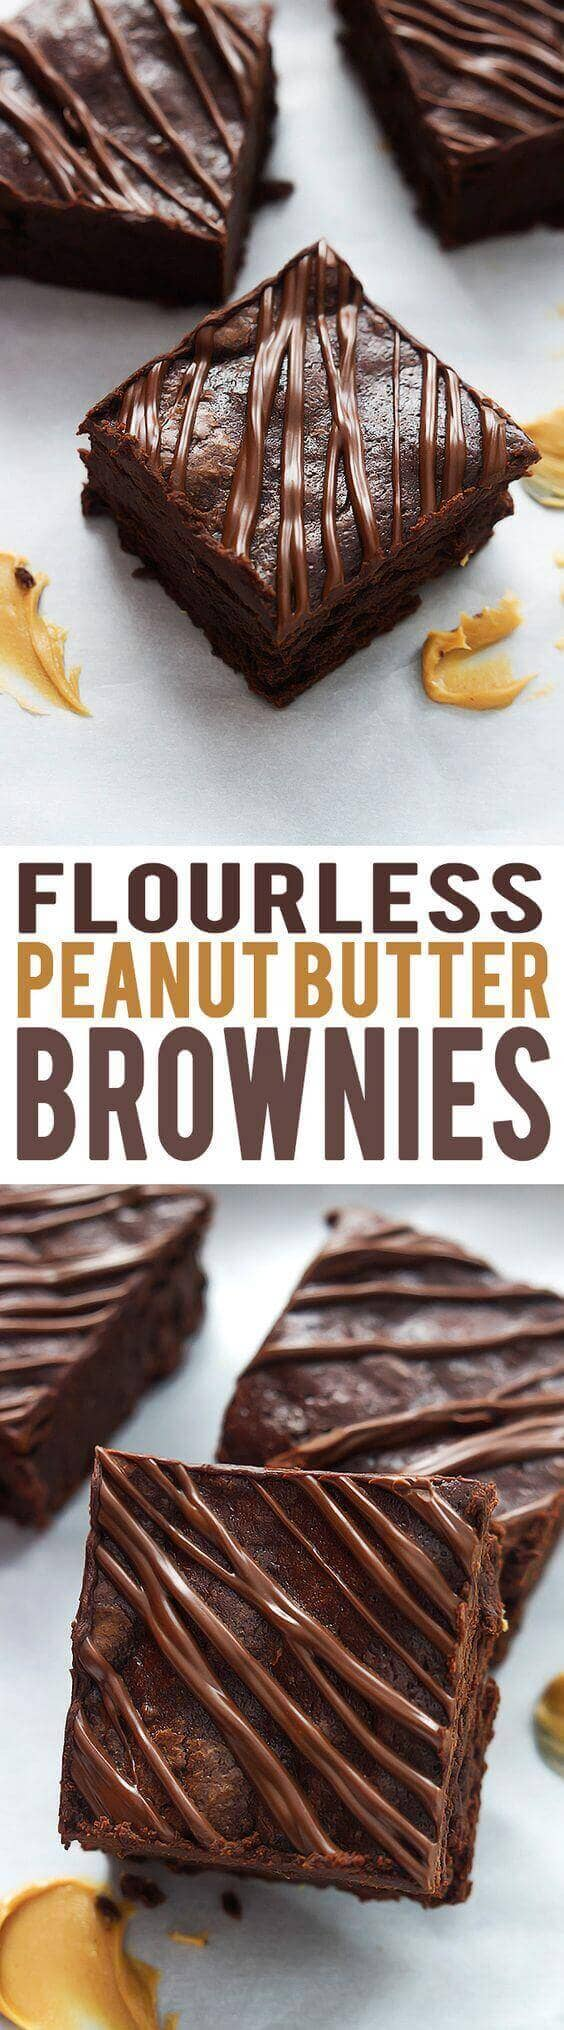 Flourless Fudgey Peanut Butter Brownies